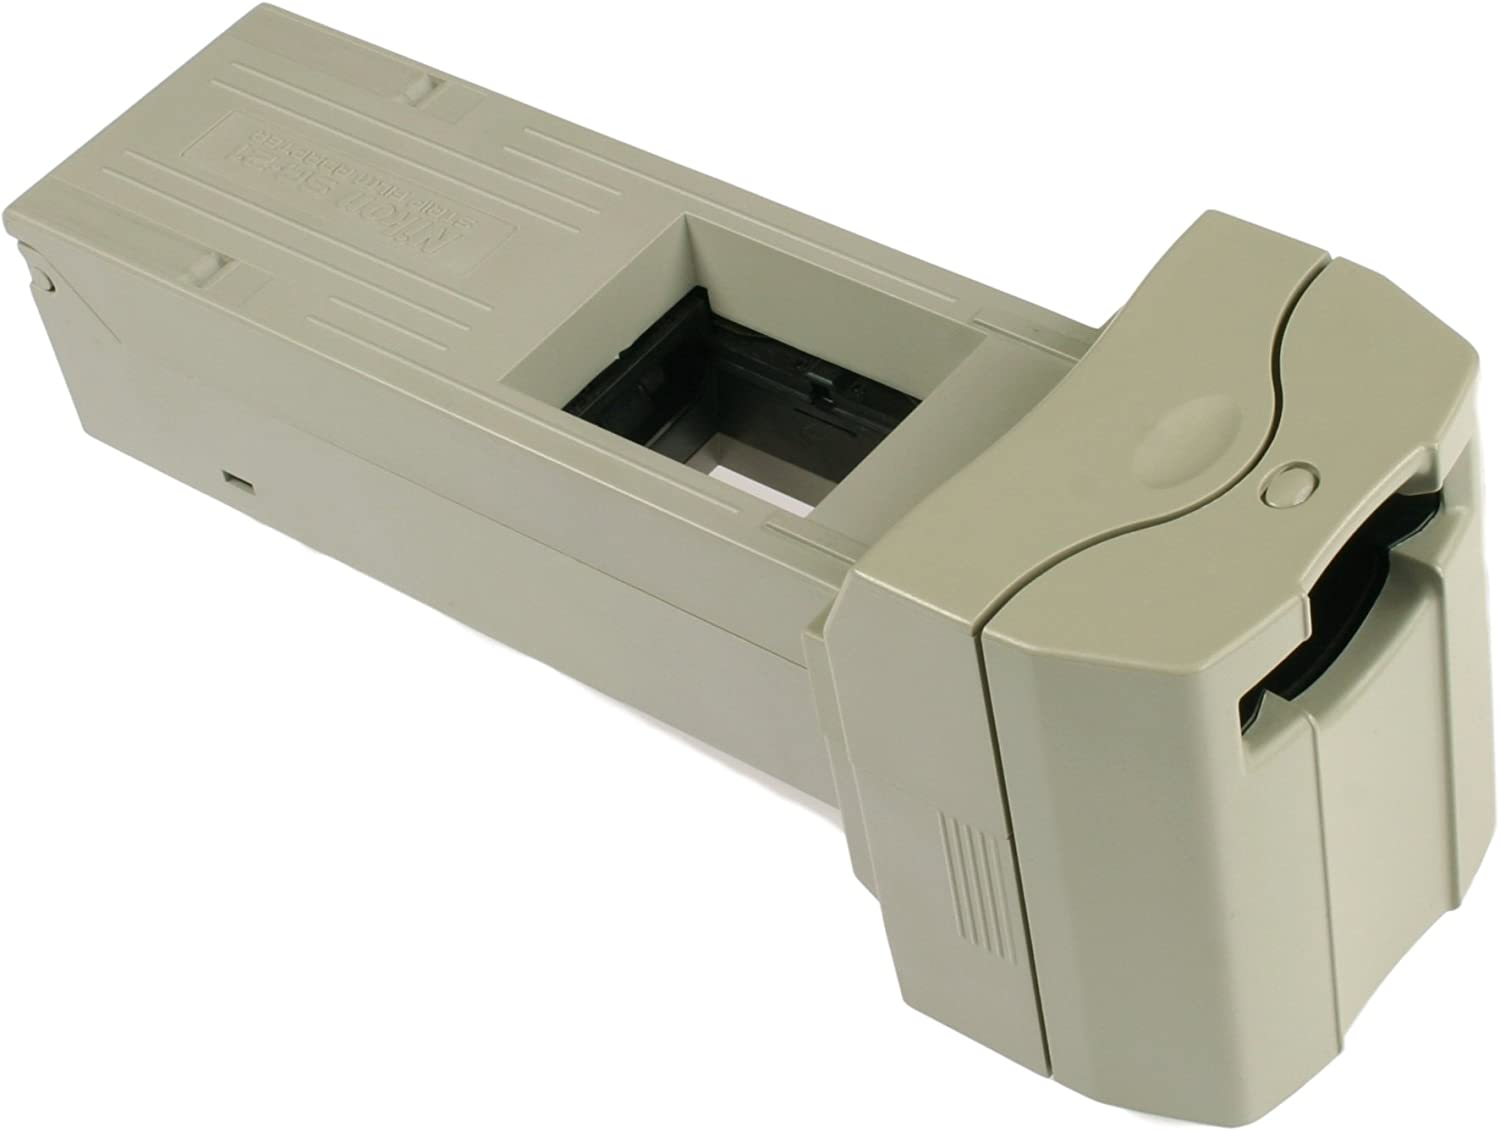 Nikon SA-21 35mm Strip Film Adapter for Super CoolScan Scanners